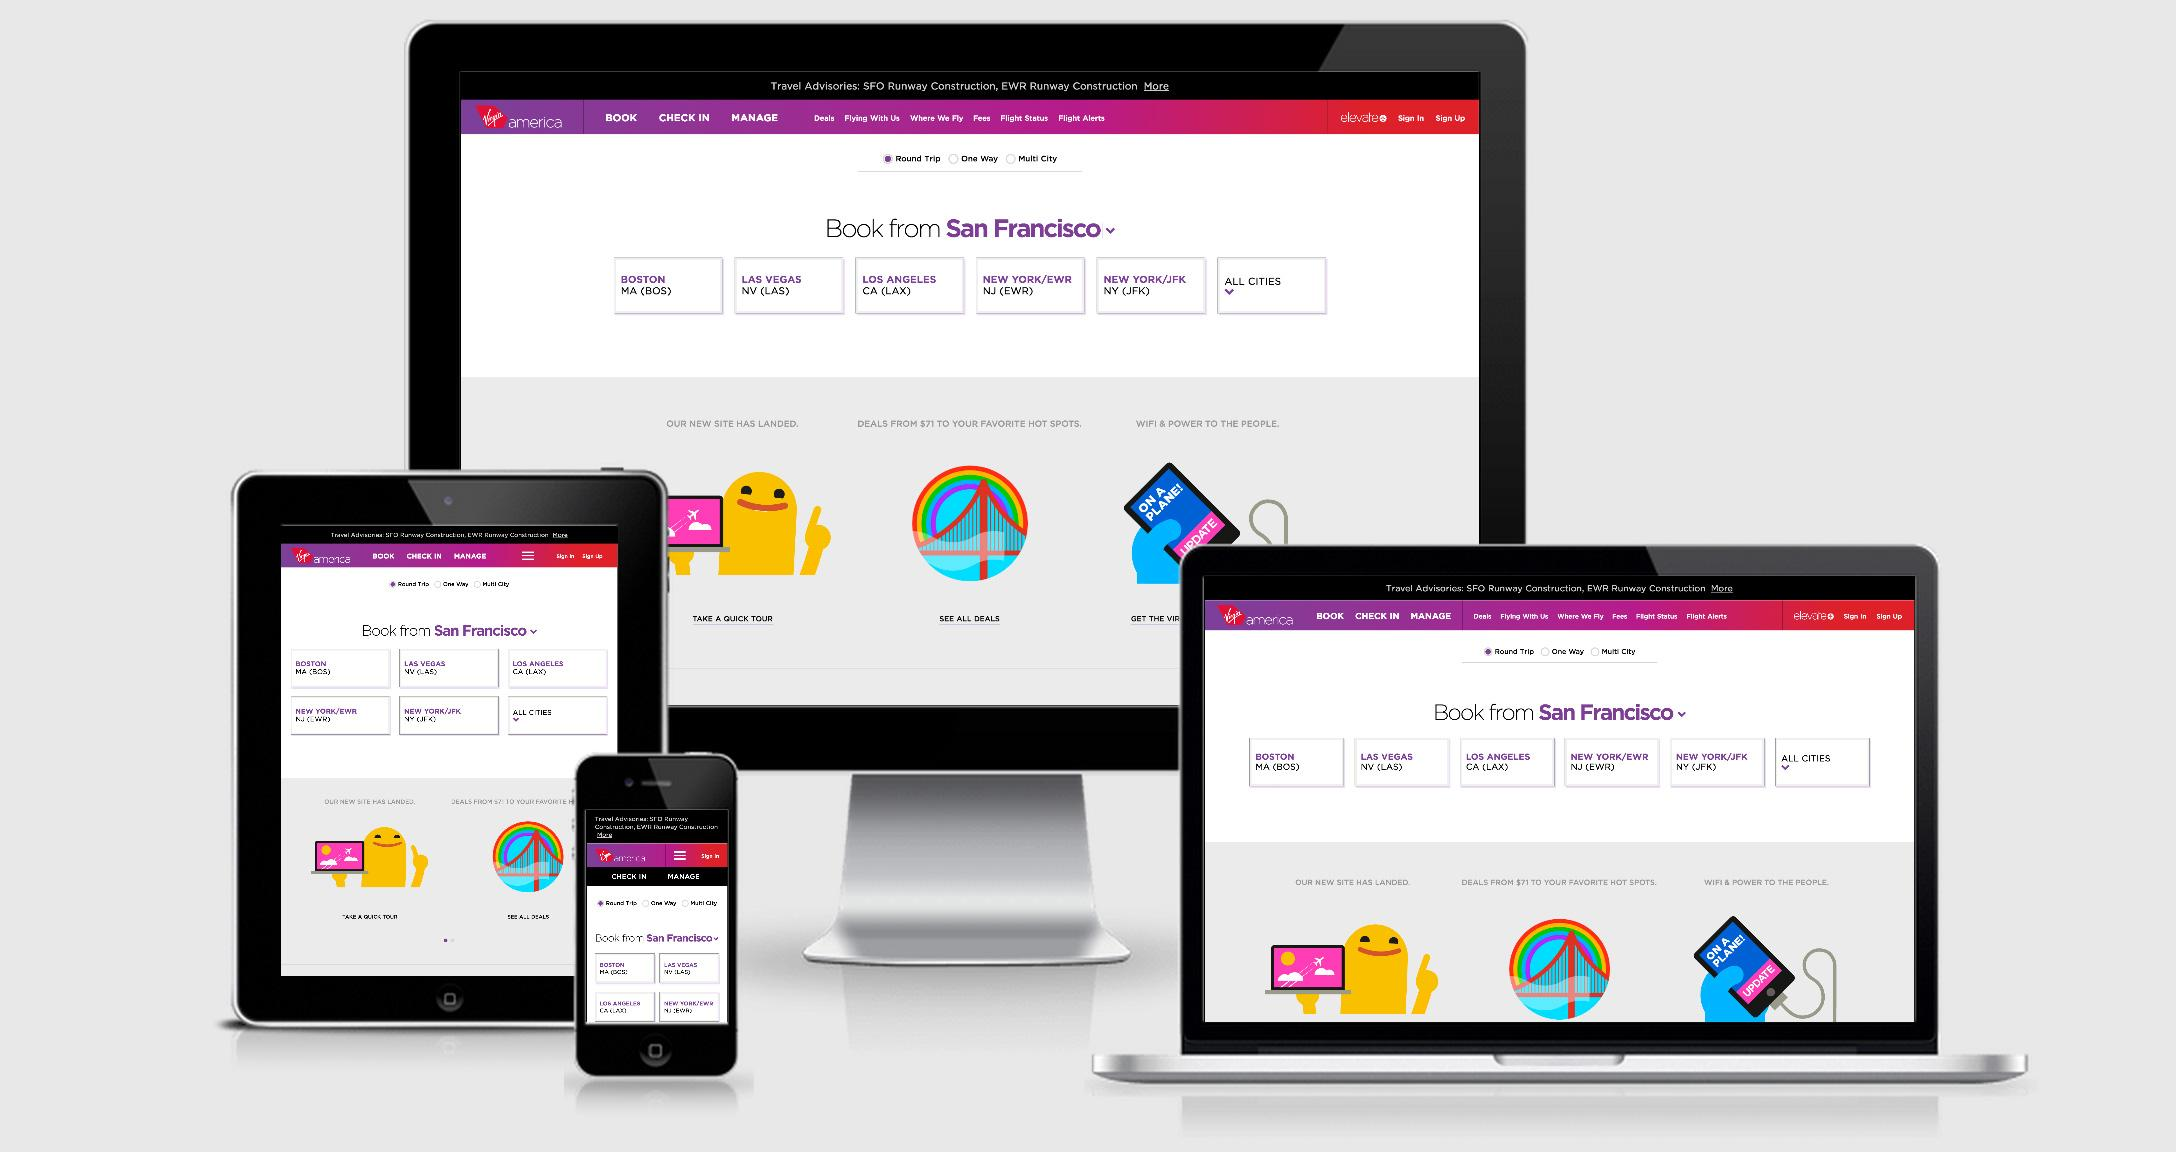 Virgin America website redesign ROI of UX case study